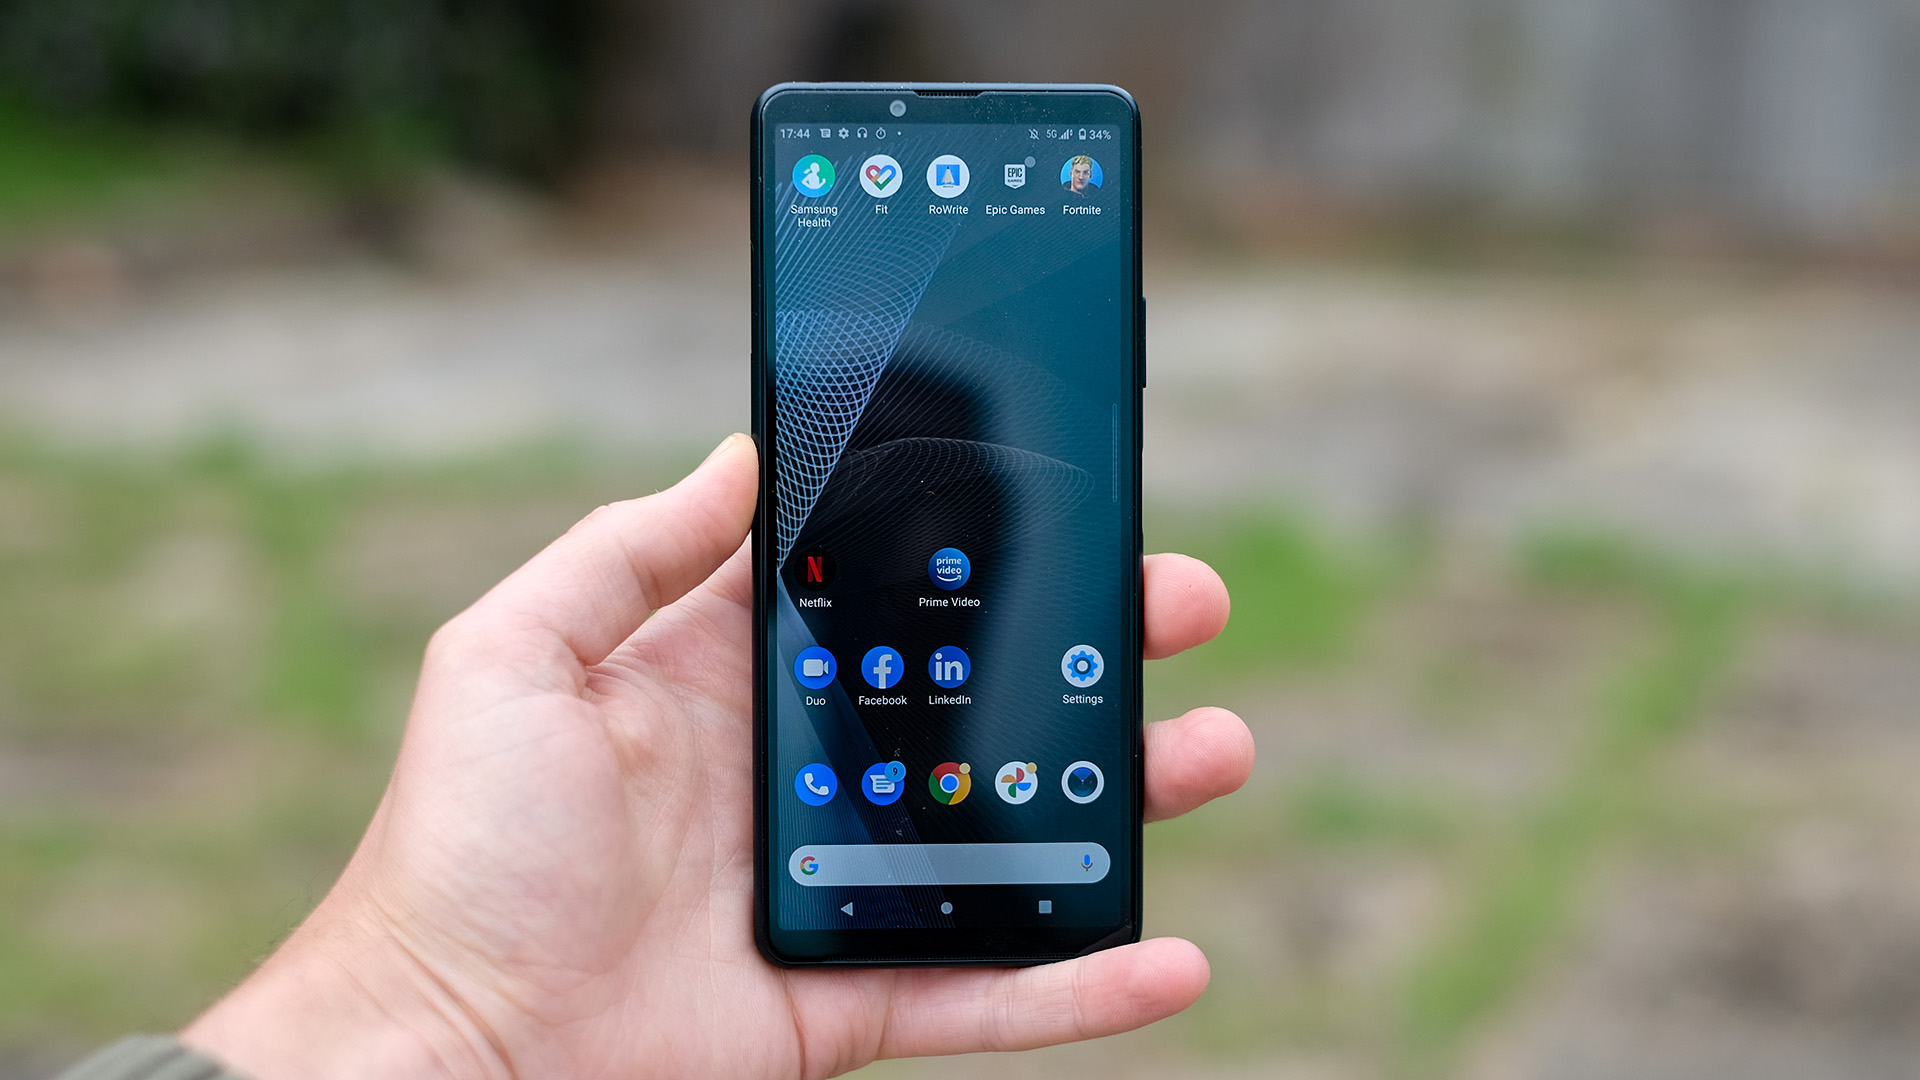 The Sony Xperia 10 III in someone's hand